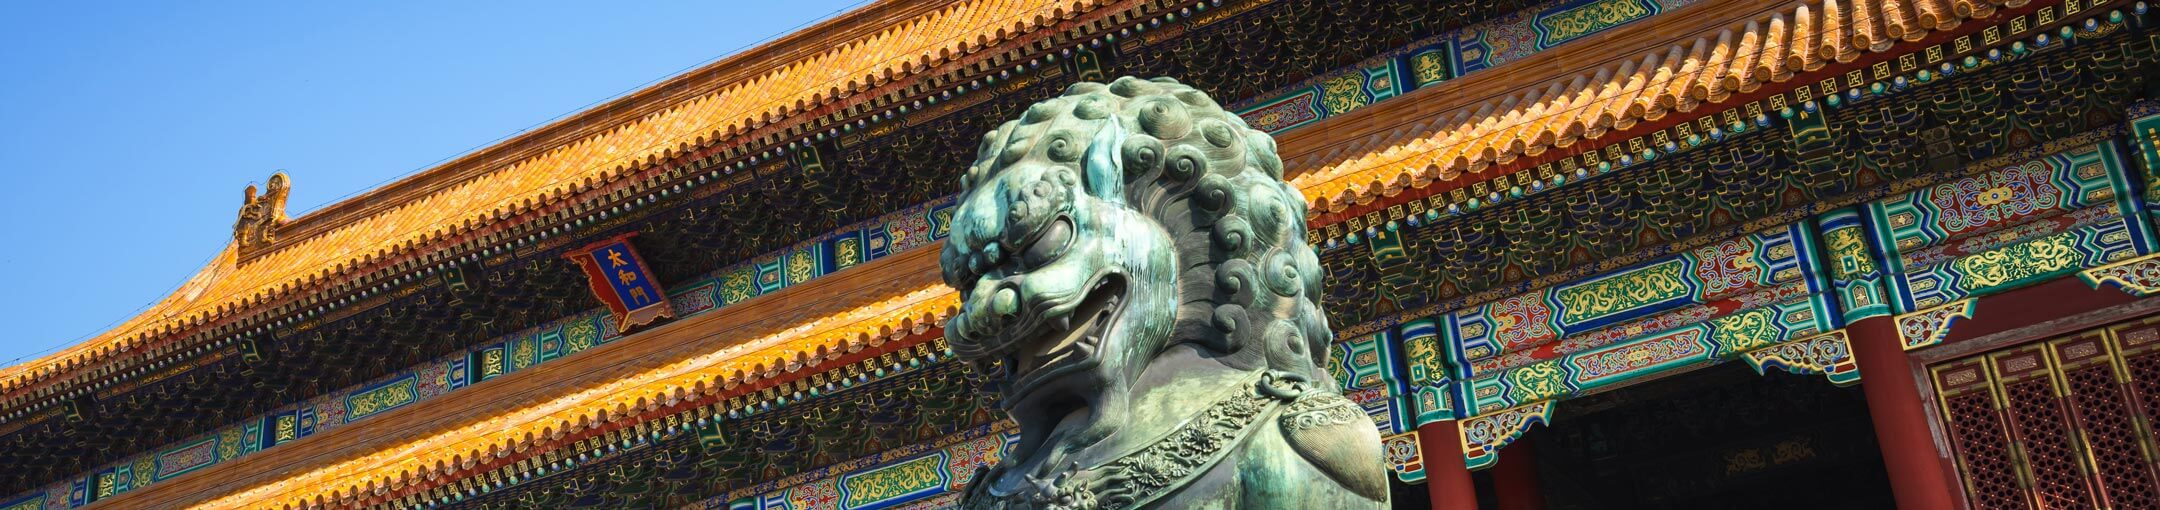 Ornamental Chinese building with lion statue in front of it.